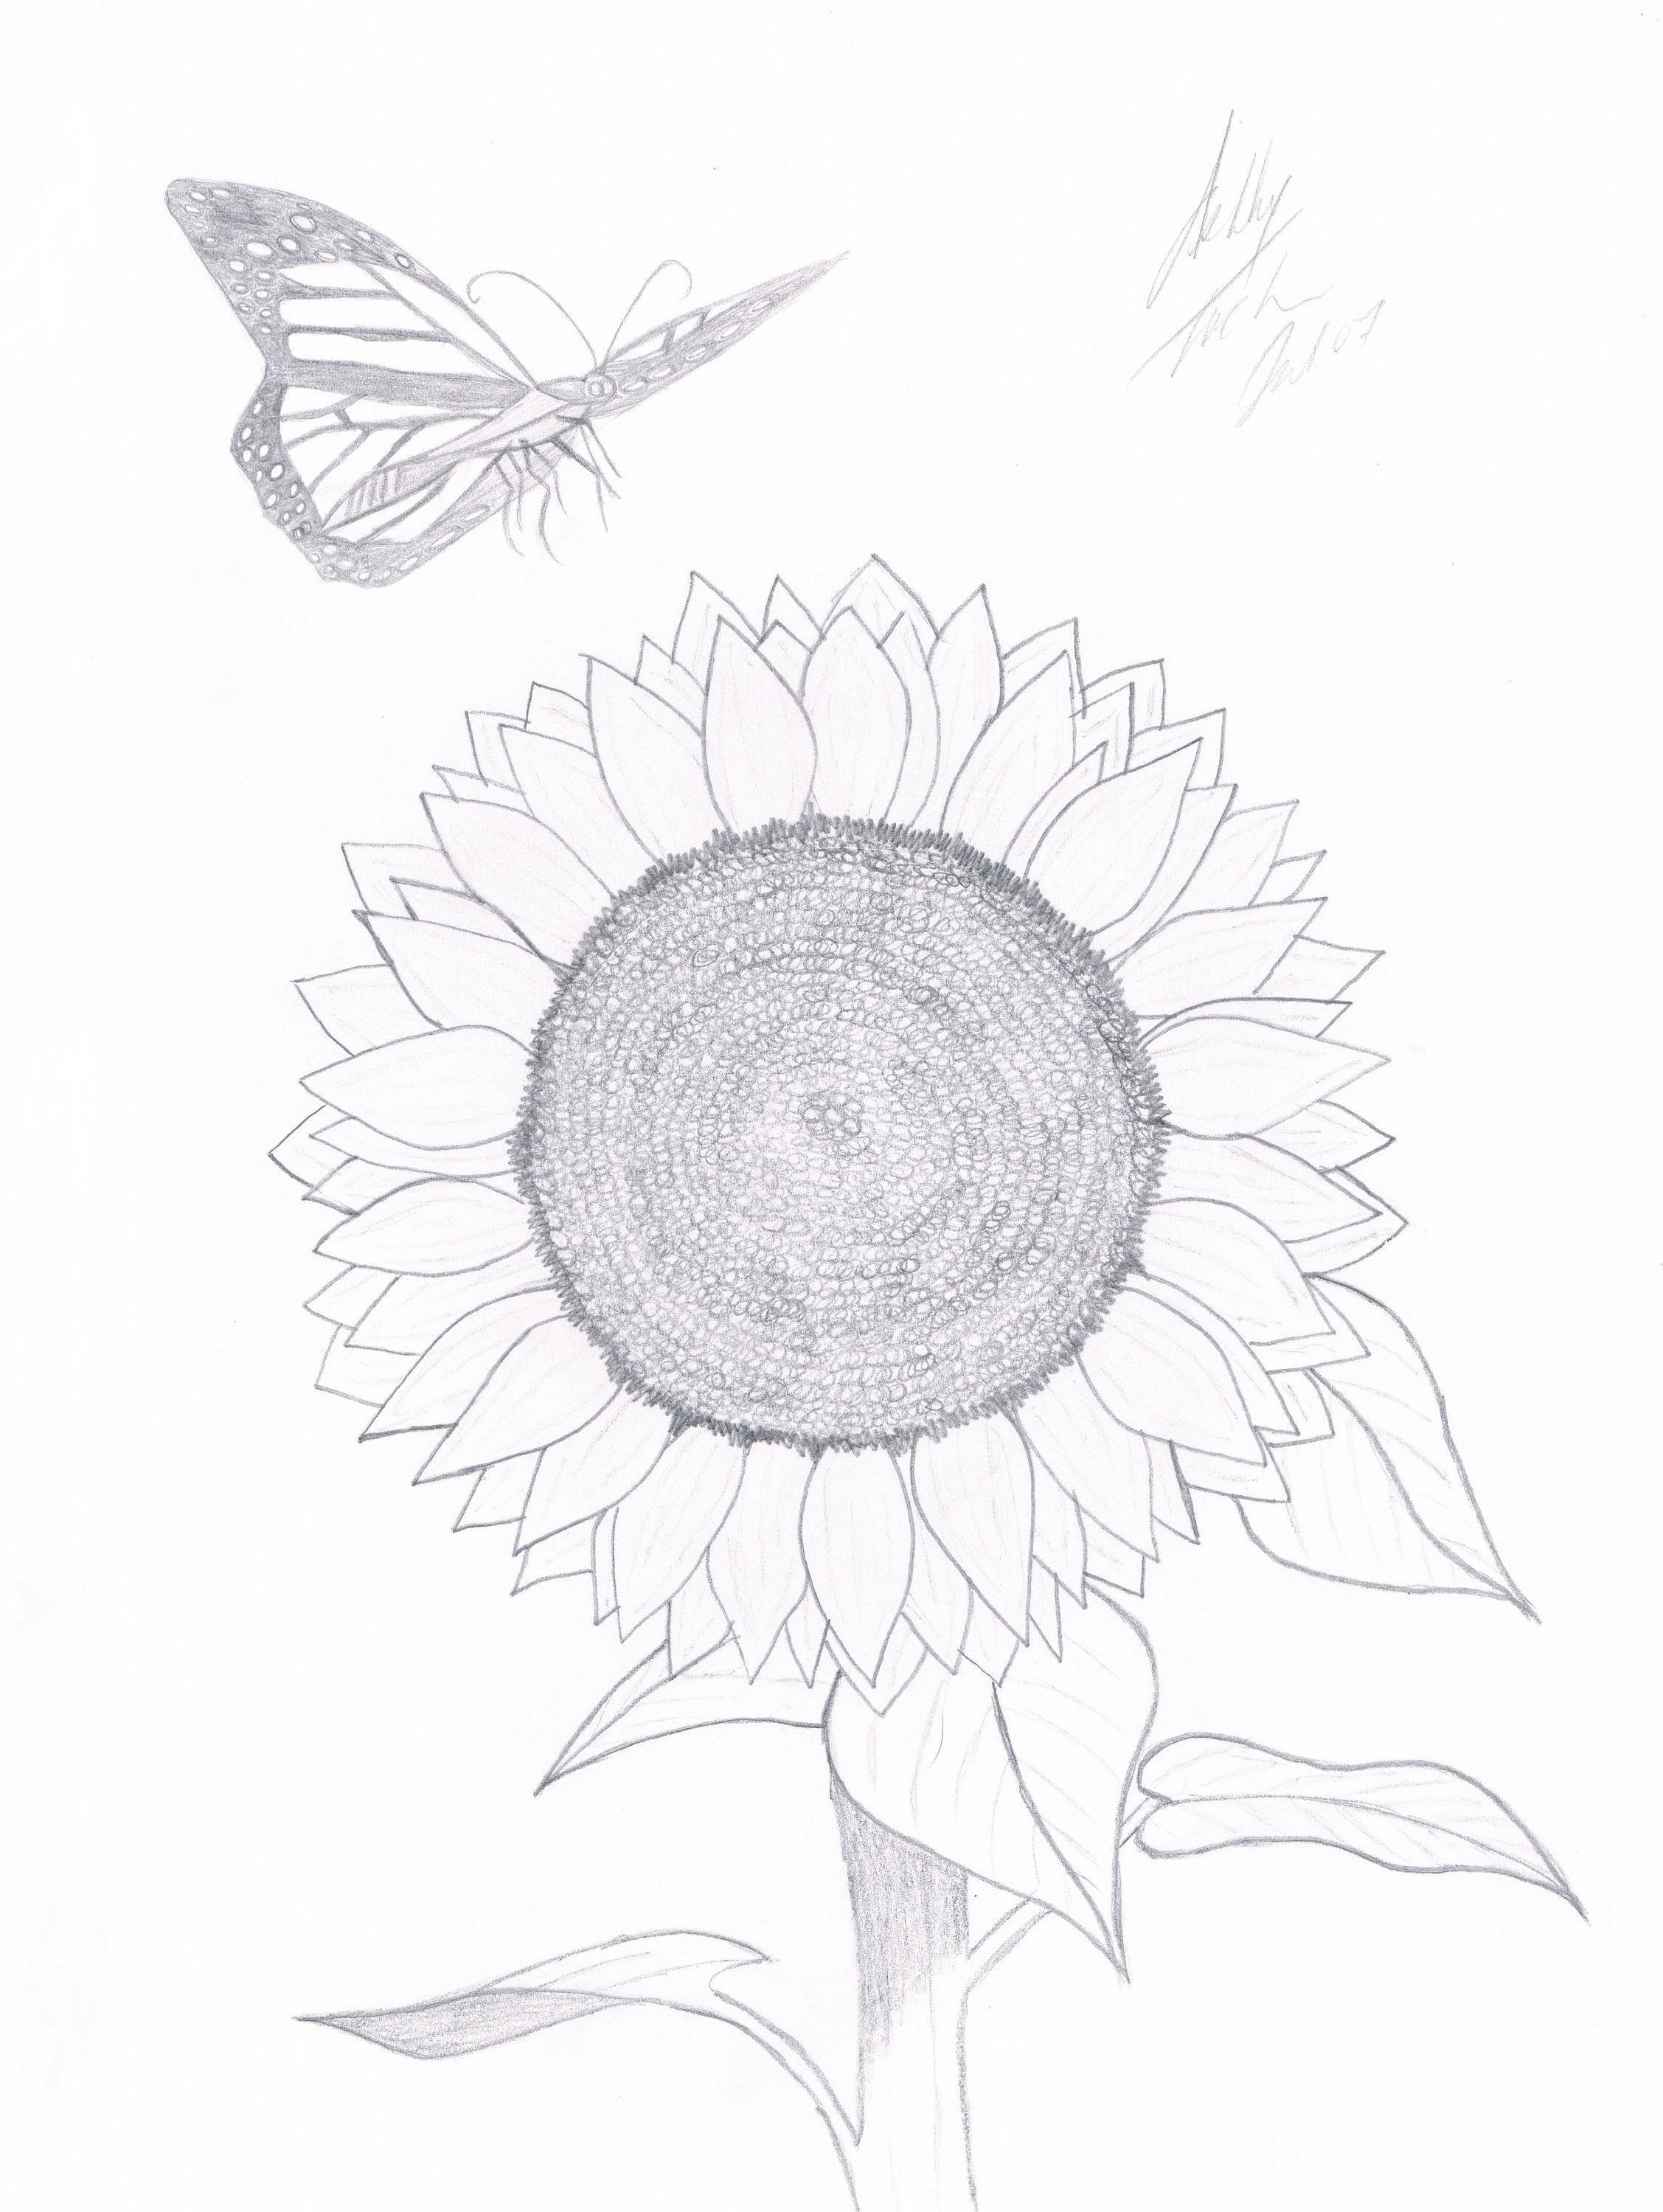 A butterfly's sunflower by ATuckerDesigns on Etsy (With images) | Painting  & drawing, Artsy, Drawings